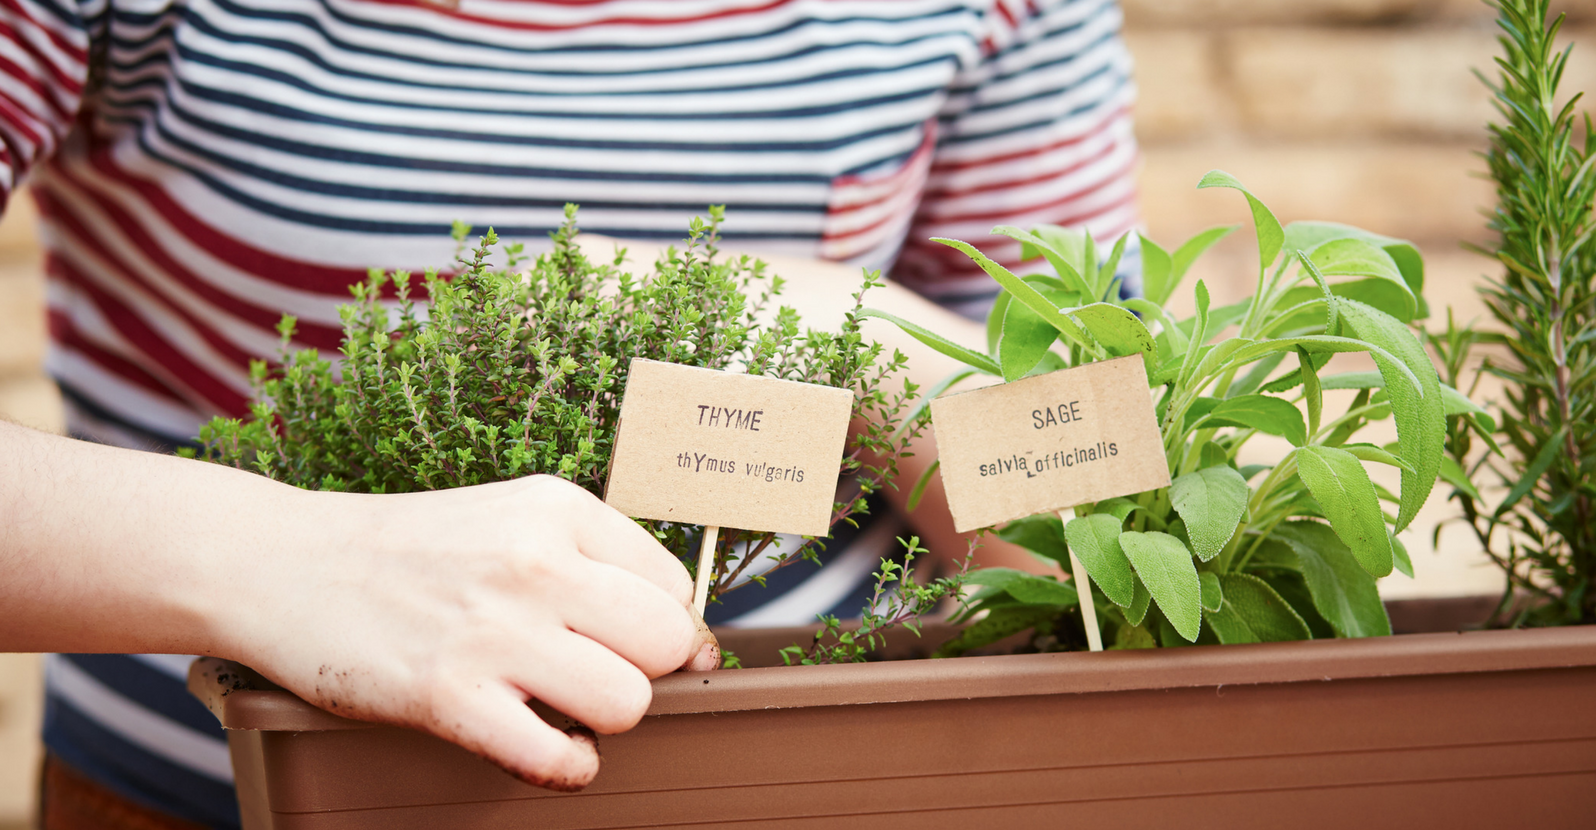 Easy and Fun DIY Garden Markers